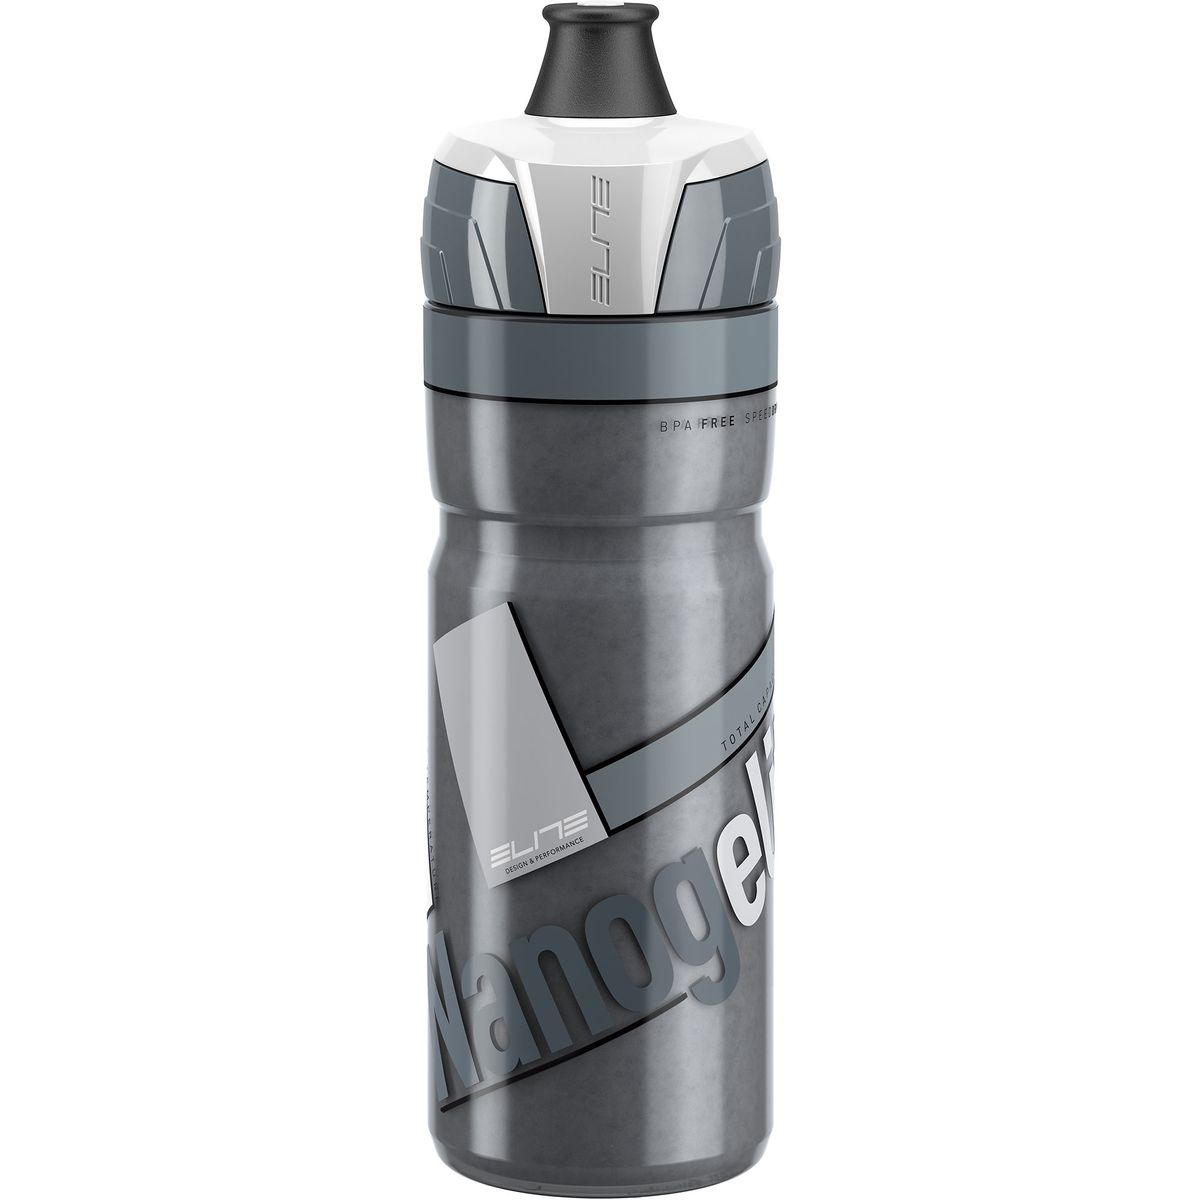 Nanogelite insulated drinks bottle 500ml